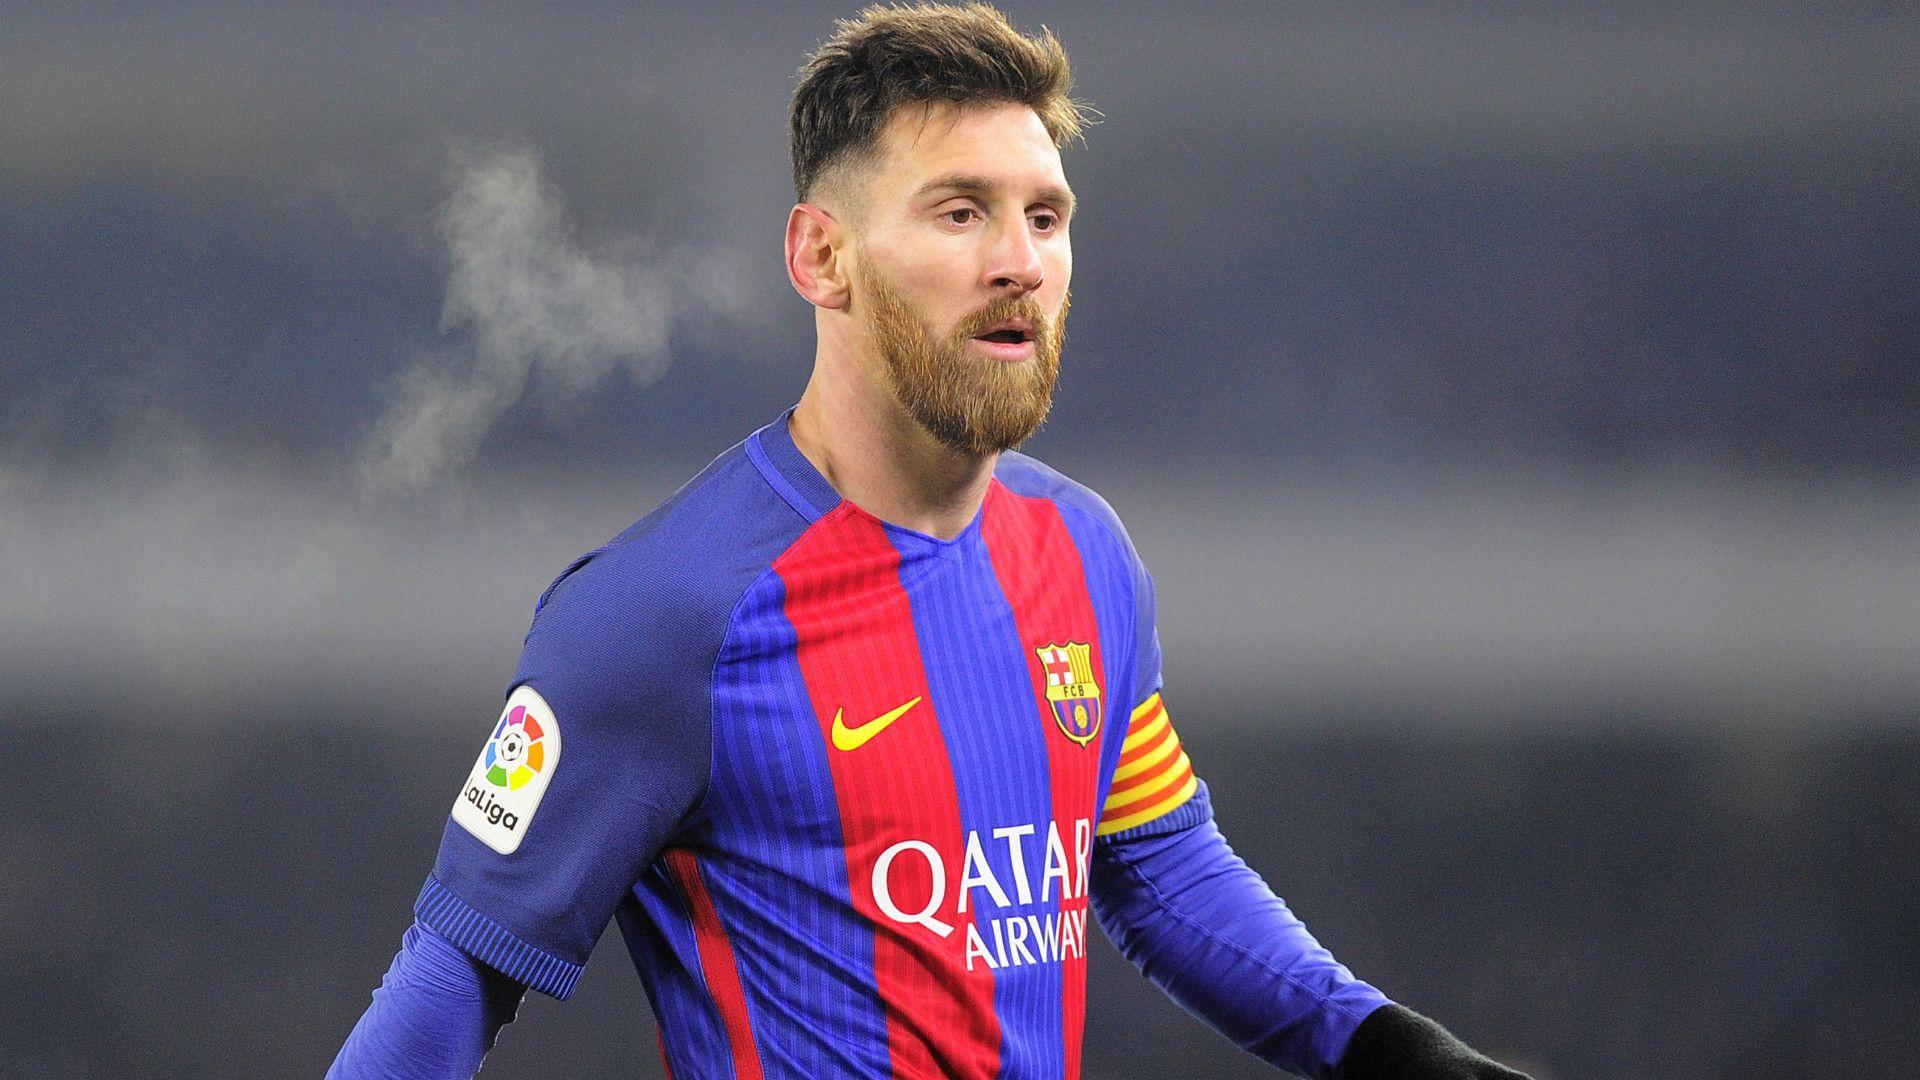 Lionel Messi Top Wallpapers 2017